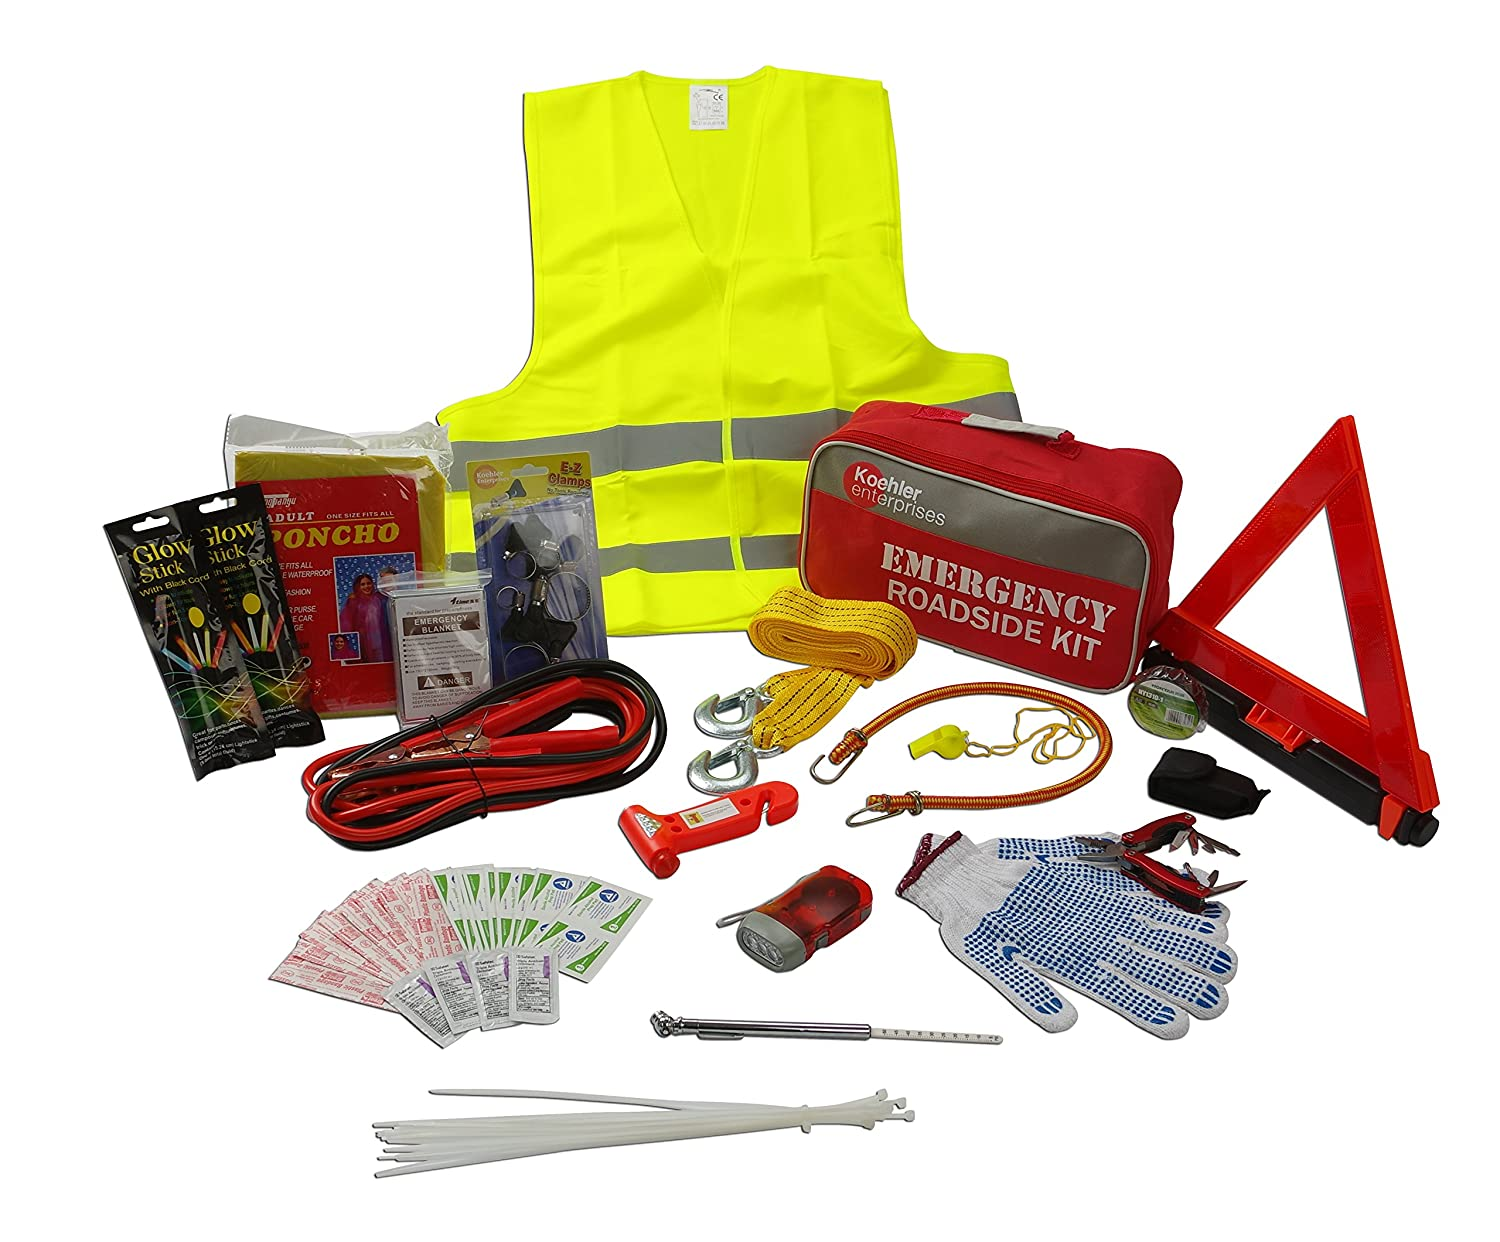 Koehler Enterprises KER5001 Roadside Assistance Vehicle Emergency Safety Kit (with Jumper Cables, Tow Rope, Reflective Warning Triangle), 75 Piece, 1 Pack